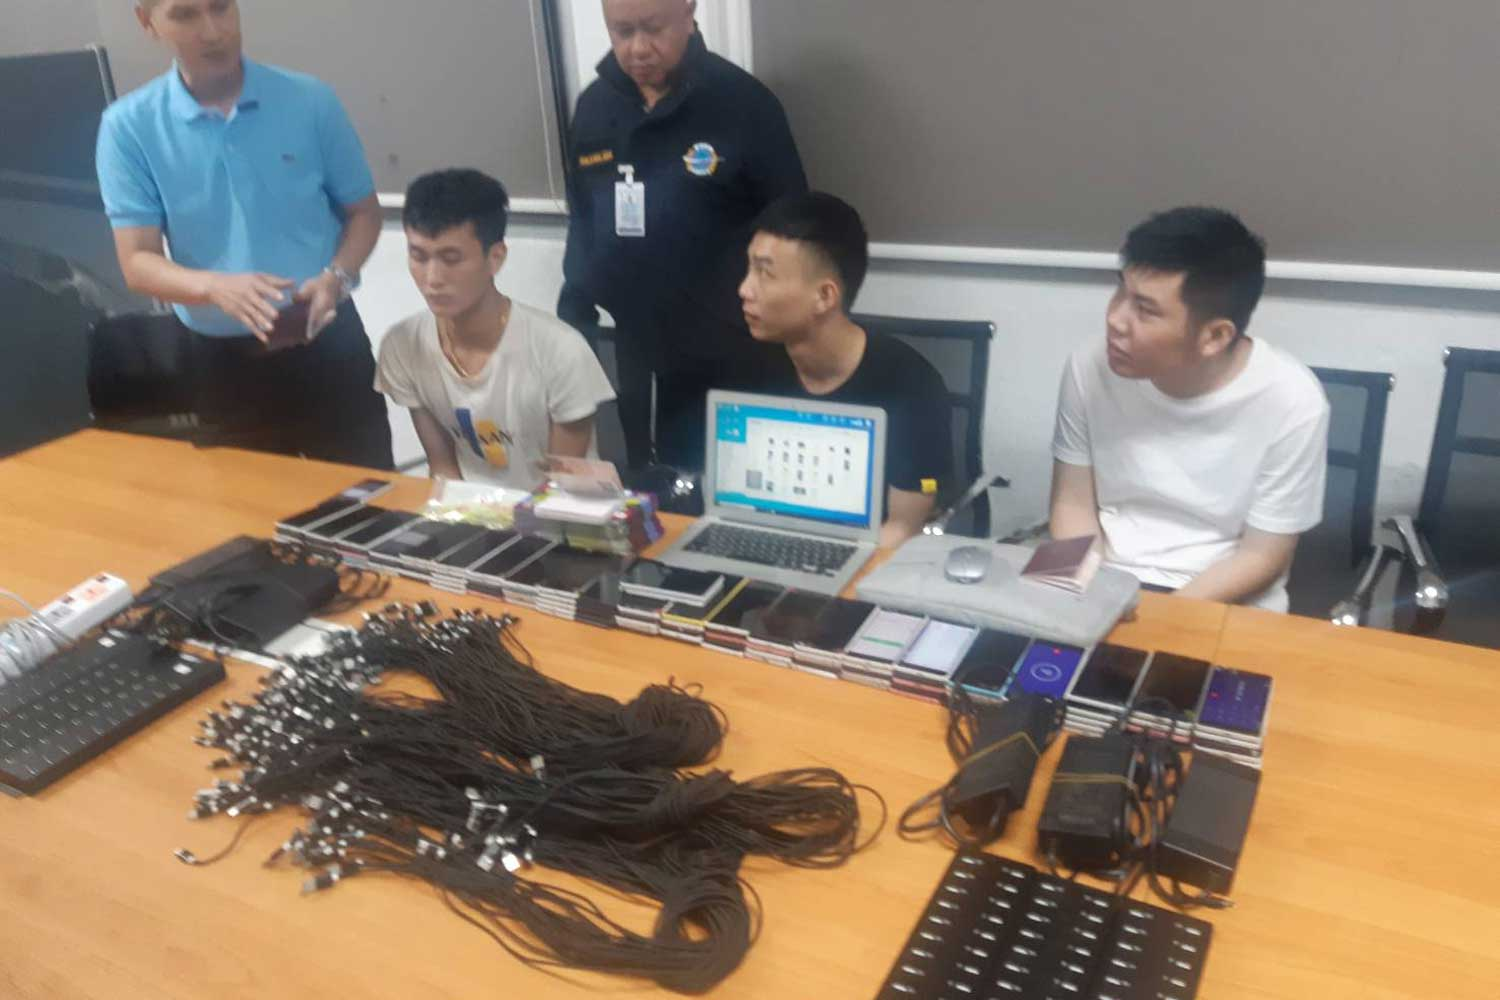 The three Chinese men, aged 23-25, arrested with phones, SIM cards and other related devices for creating fake WeChat accounts for sale on the black market in China. (Police photo)